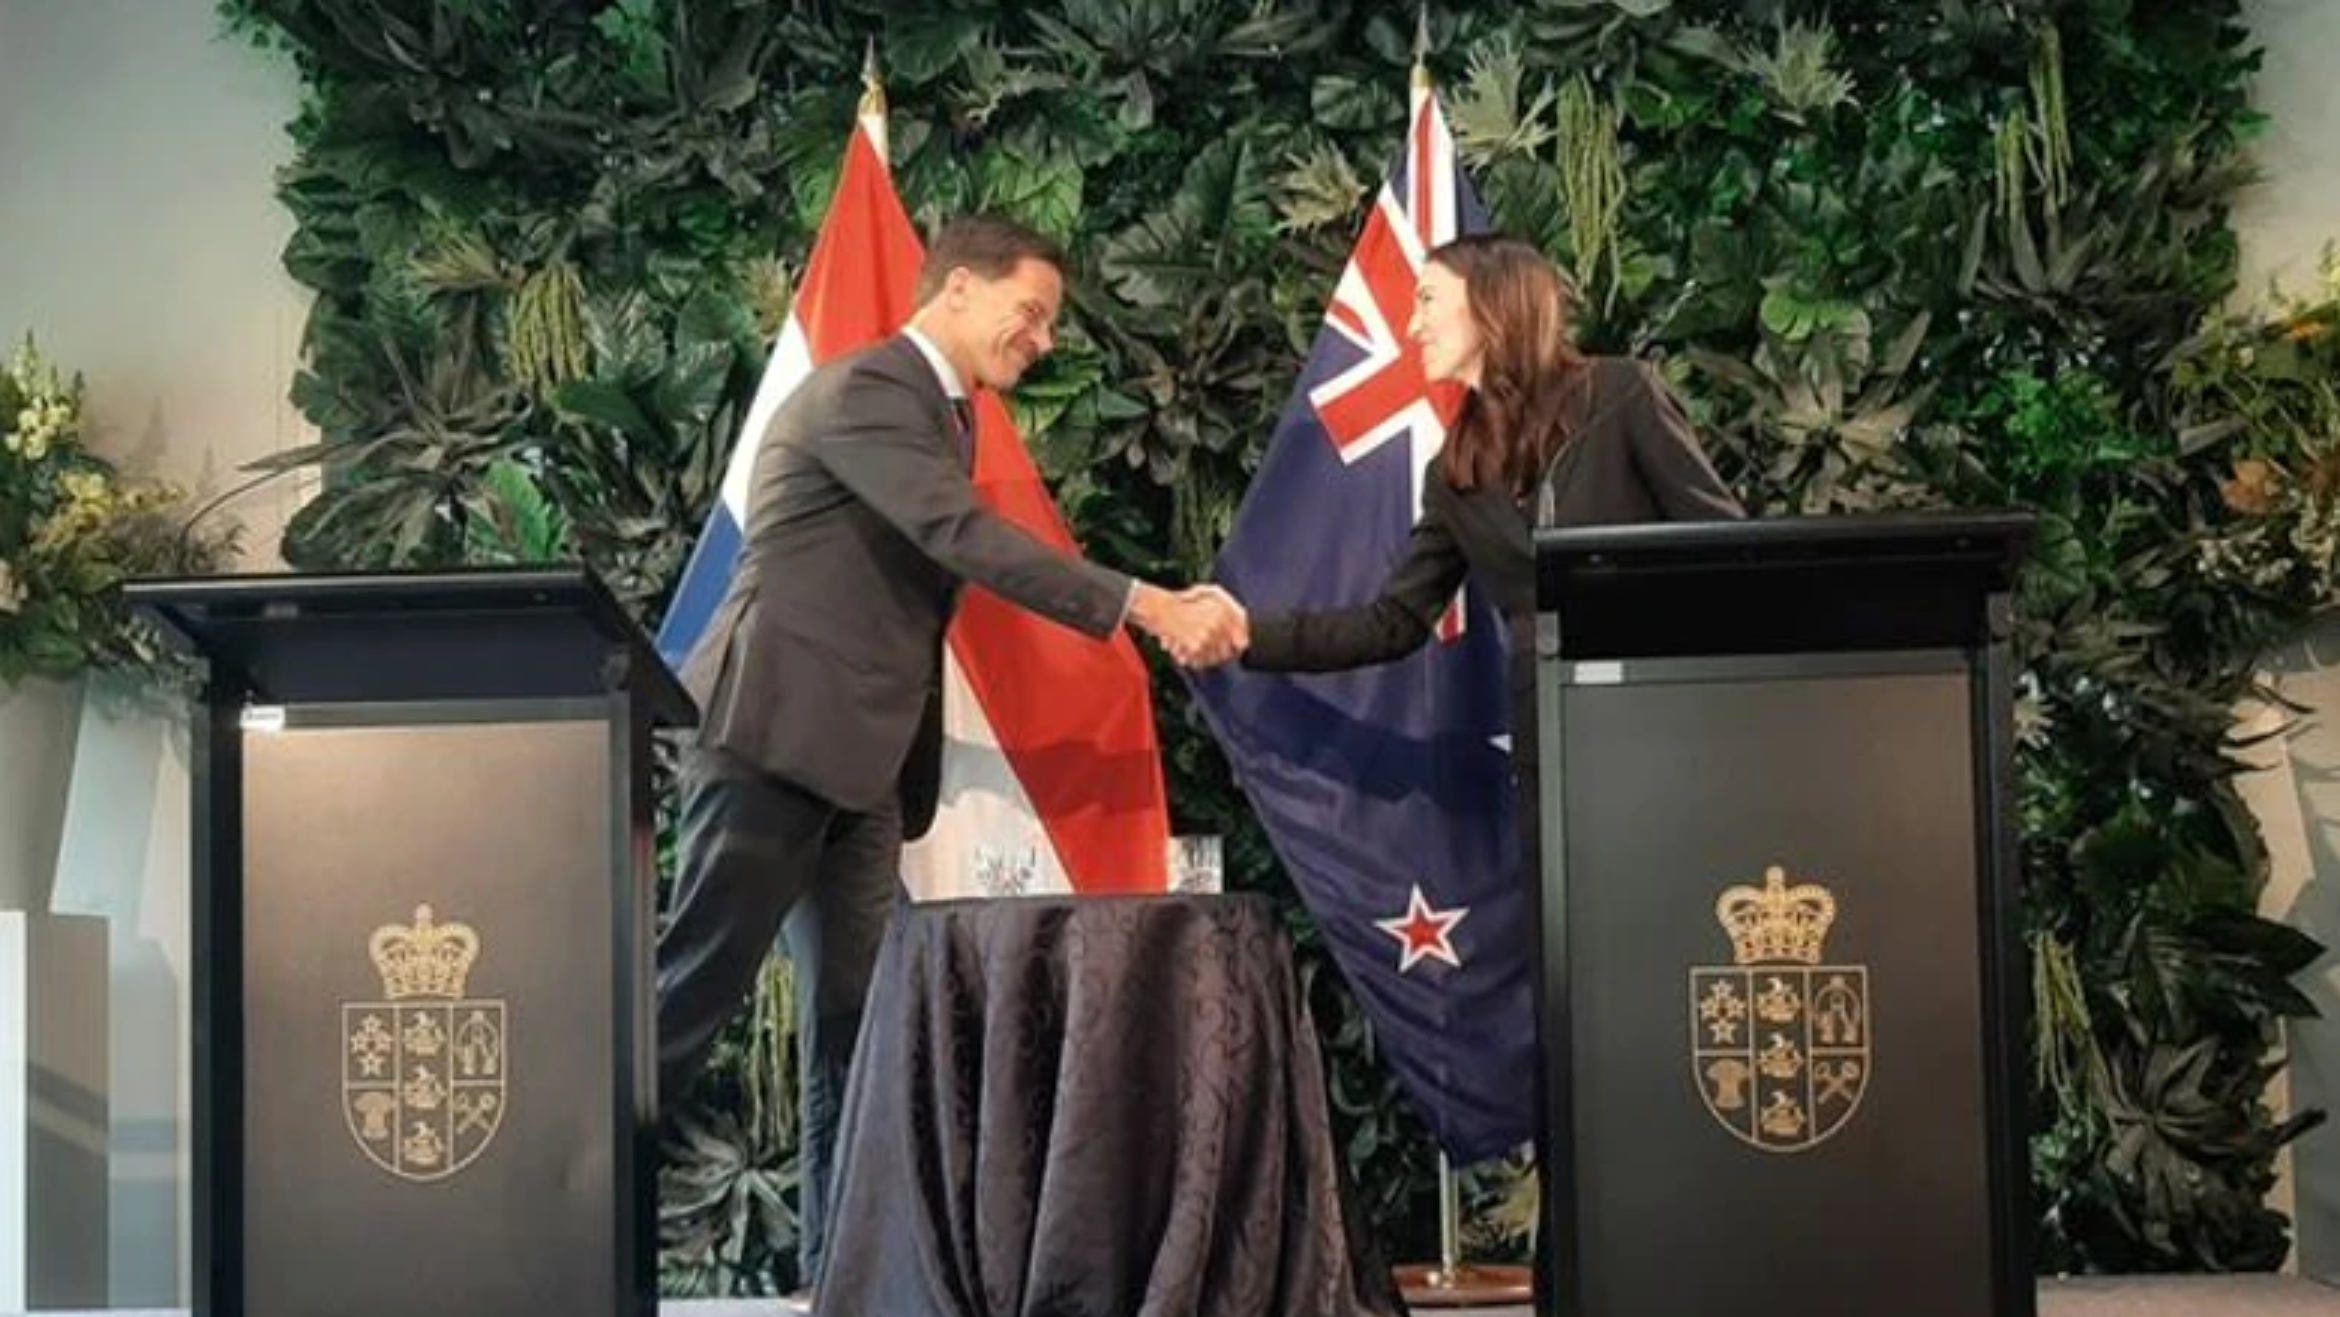 Netherlands Prime Minister Mark Rutte and Prime Minister Jacinda Ardern of New Zealand  Source: One News New Zealand